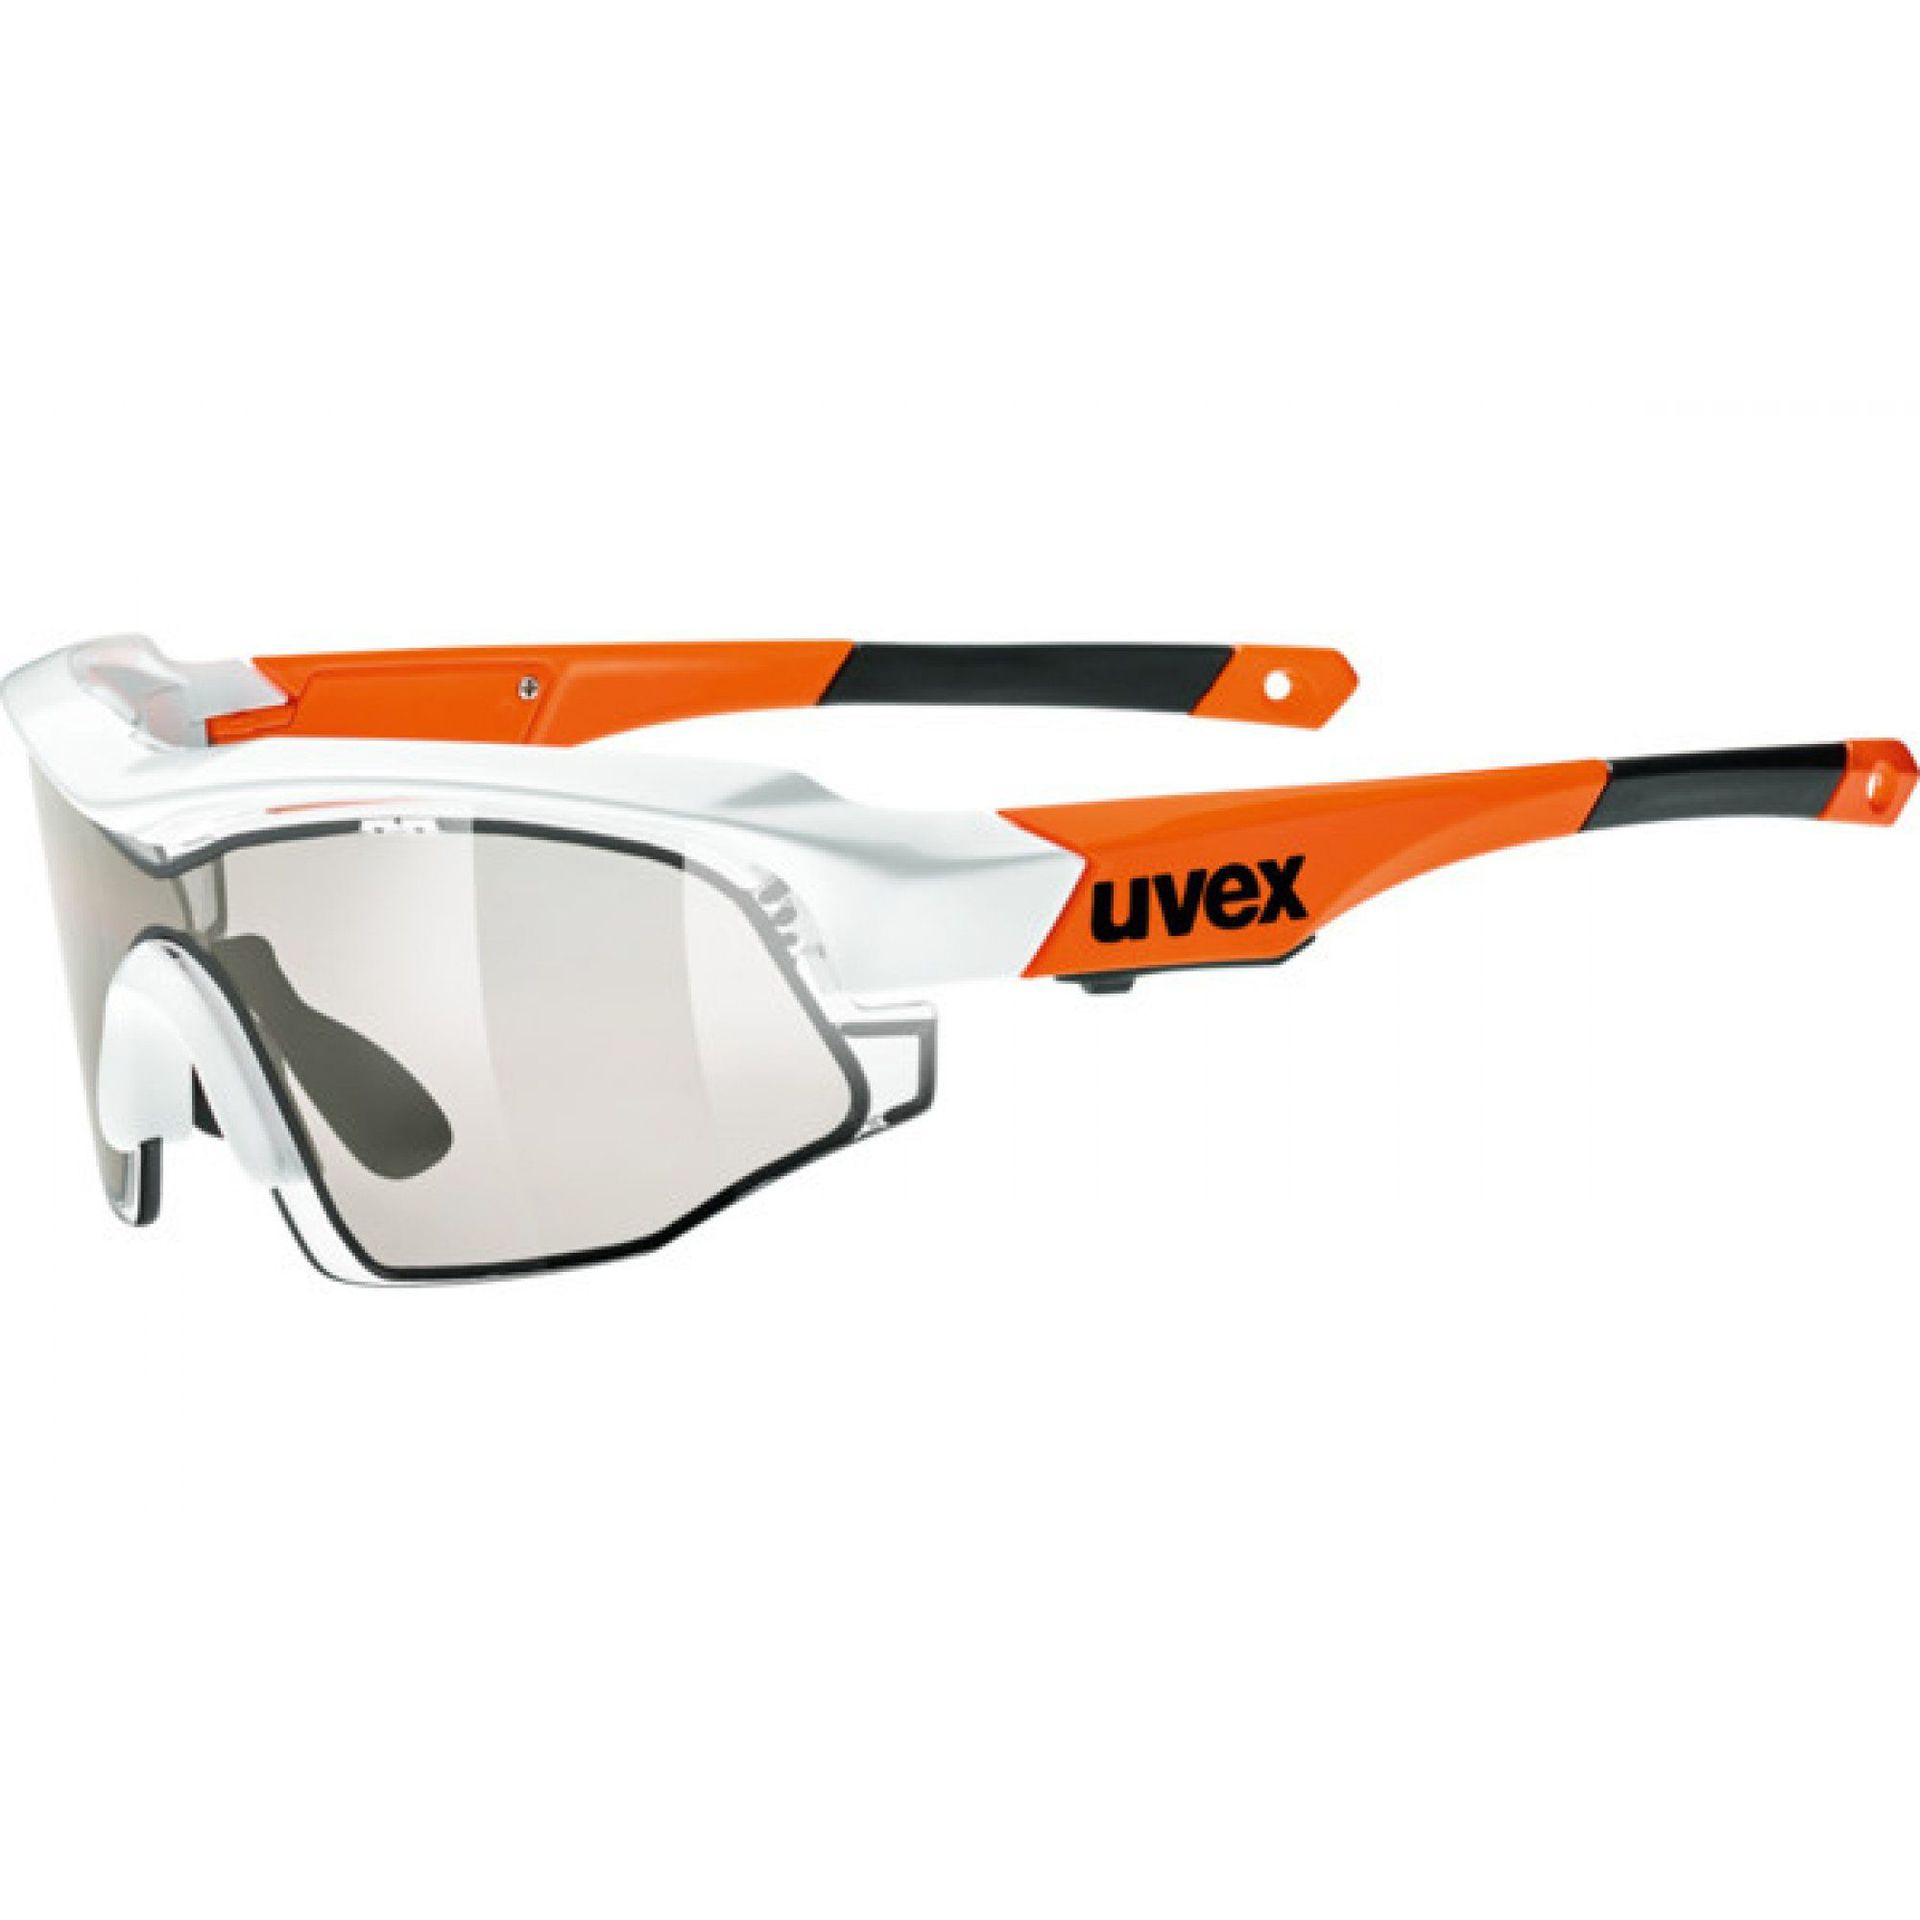 OKULARY UVEX VARIOTRONIC S 948|8399 WHITE|ORANGE